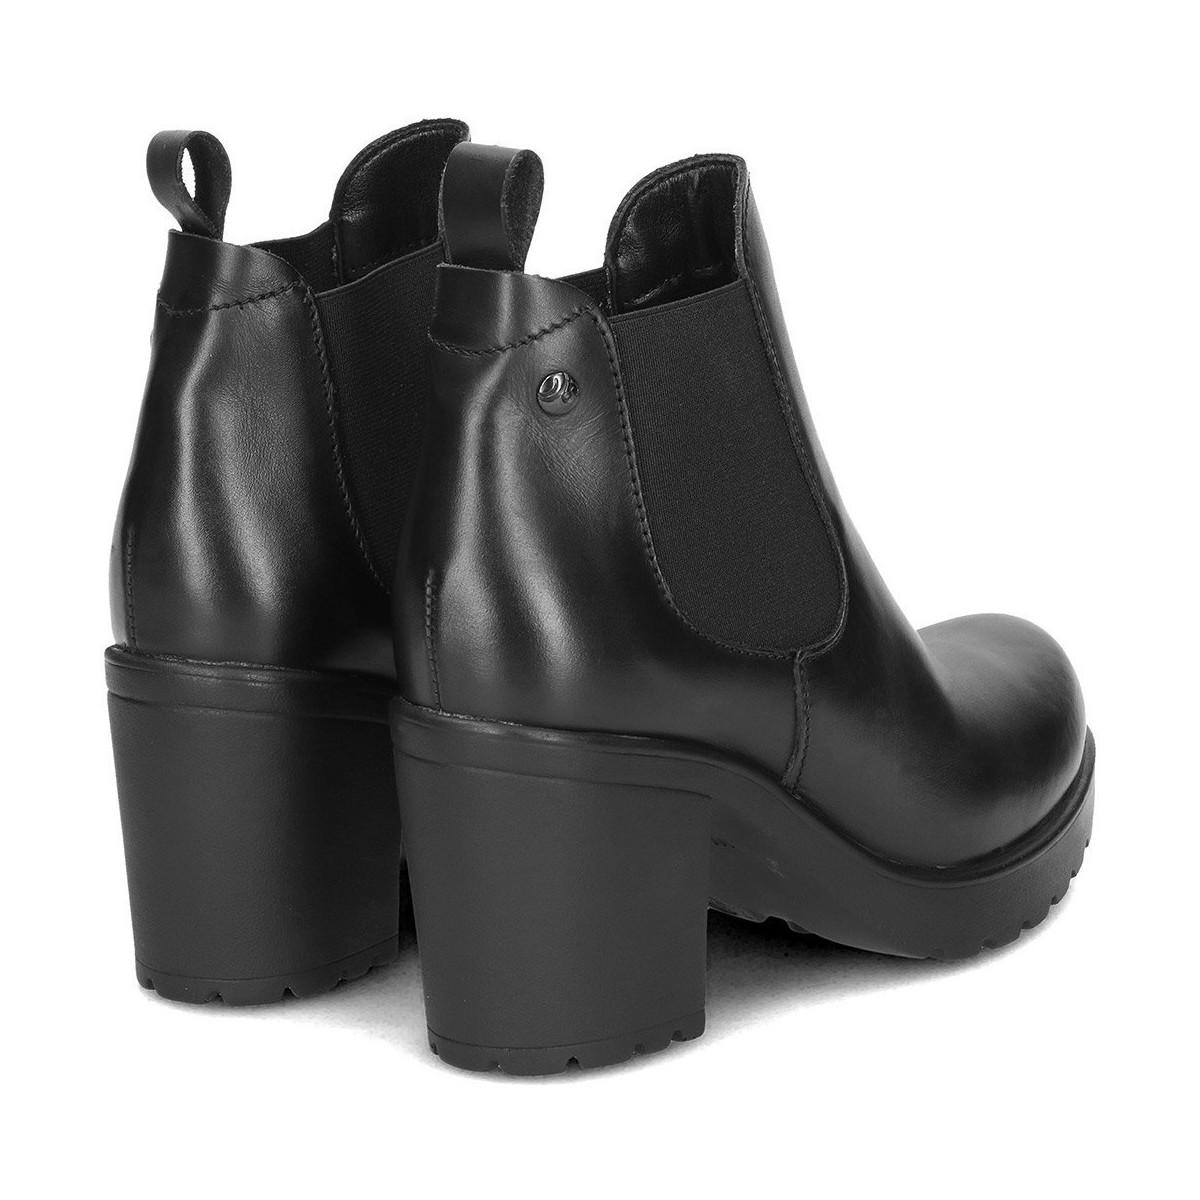 Boots Women's S Low Black Ankle 51361521 In in Black Lyst Oliver wRBRqgUXZ